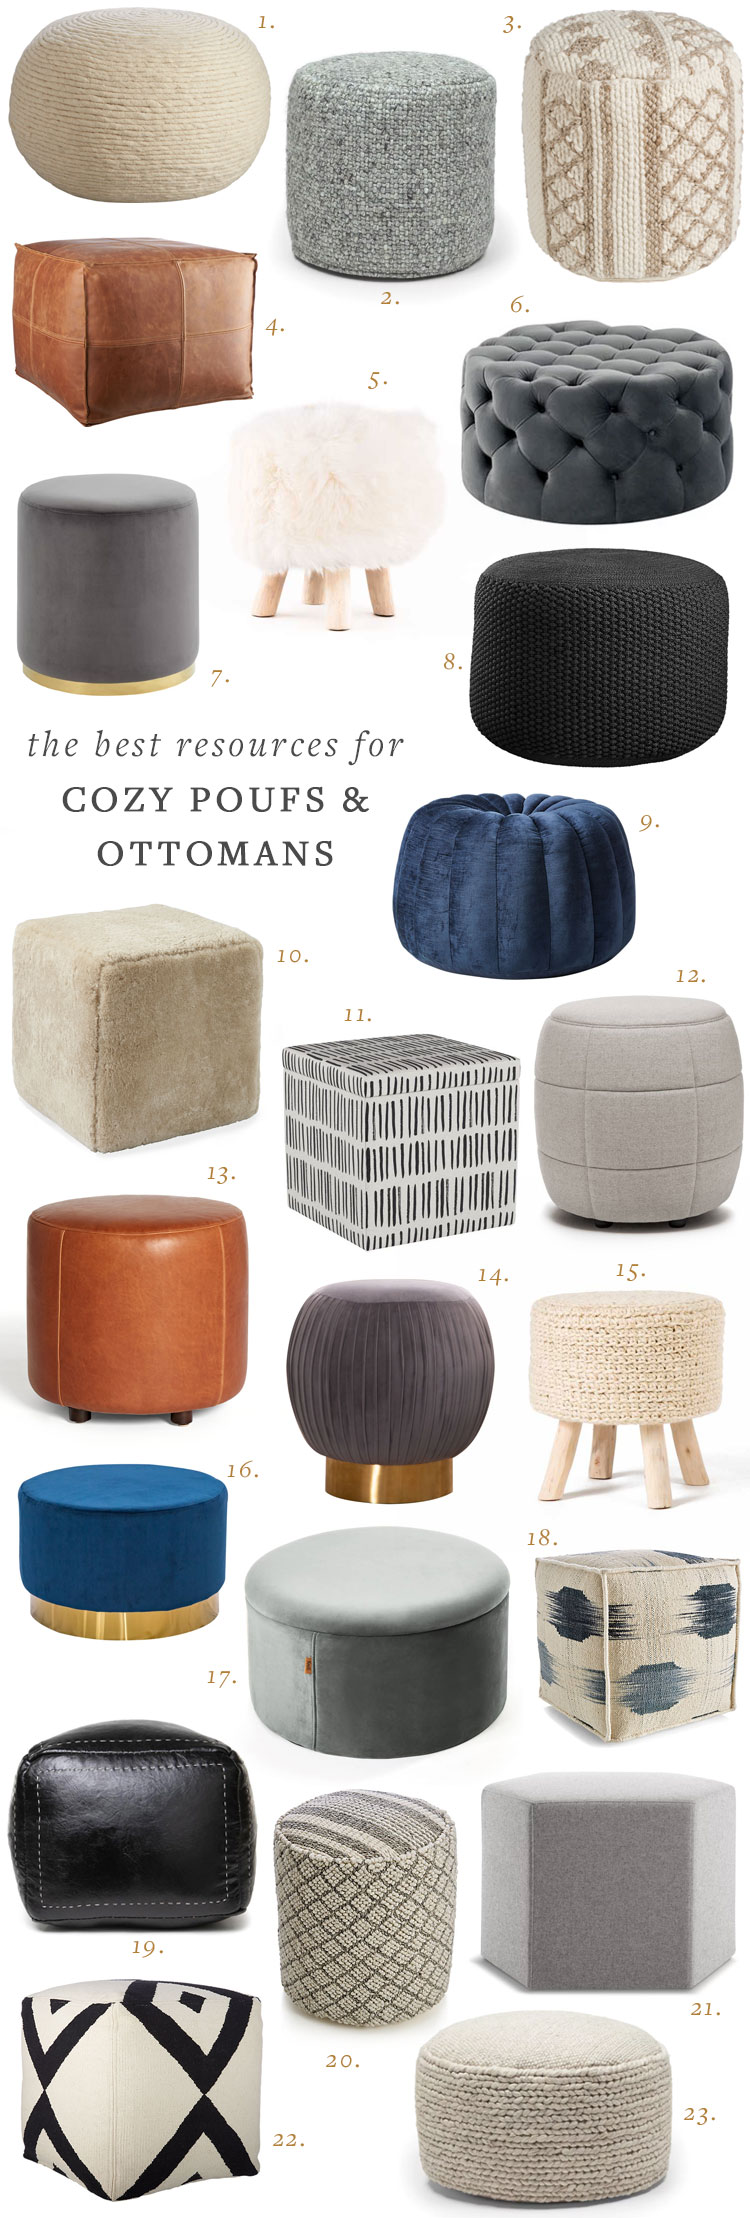 30+ Poufs, Ottomans, and Footstools to Make Your Home Even Cozier! Get the full shopping guide, resource list, and round up on Jojotastic.com #poufs #ottoman #footstool #homedecor #interiordecor #hygge #cozydecor #smallspaces